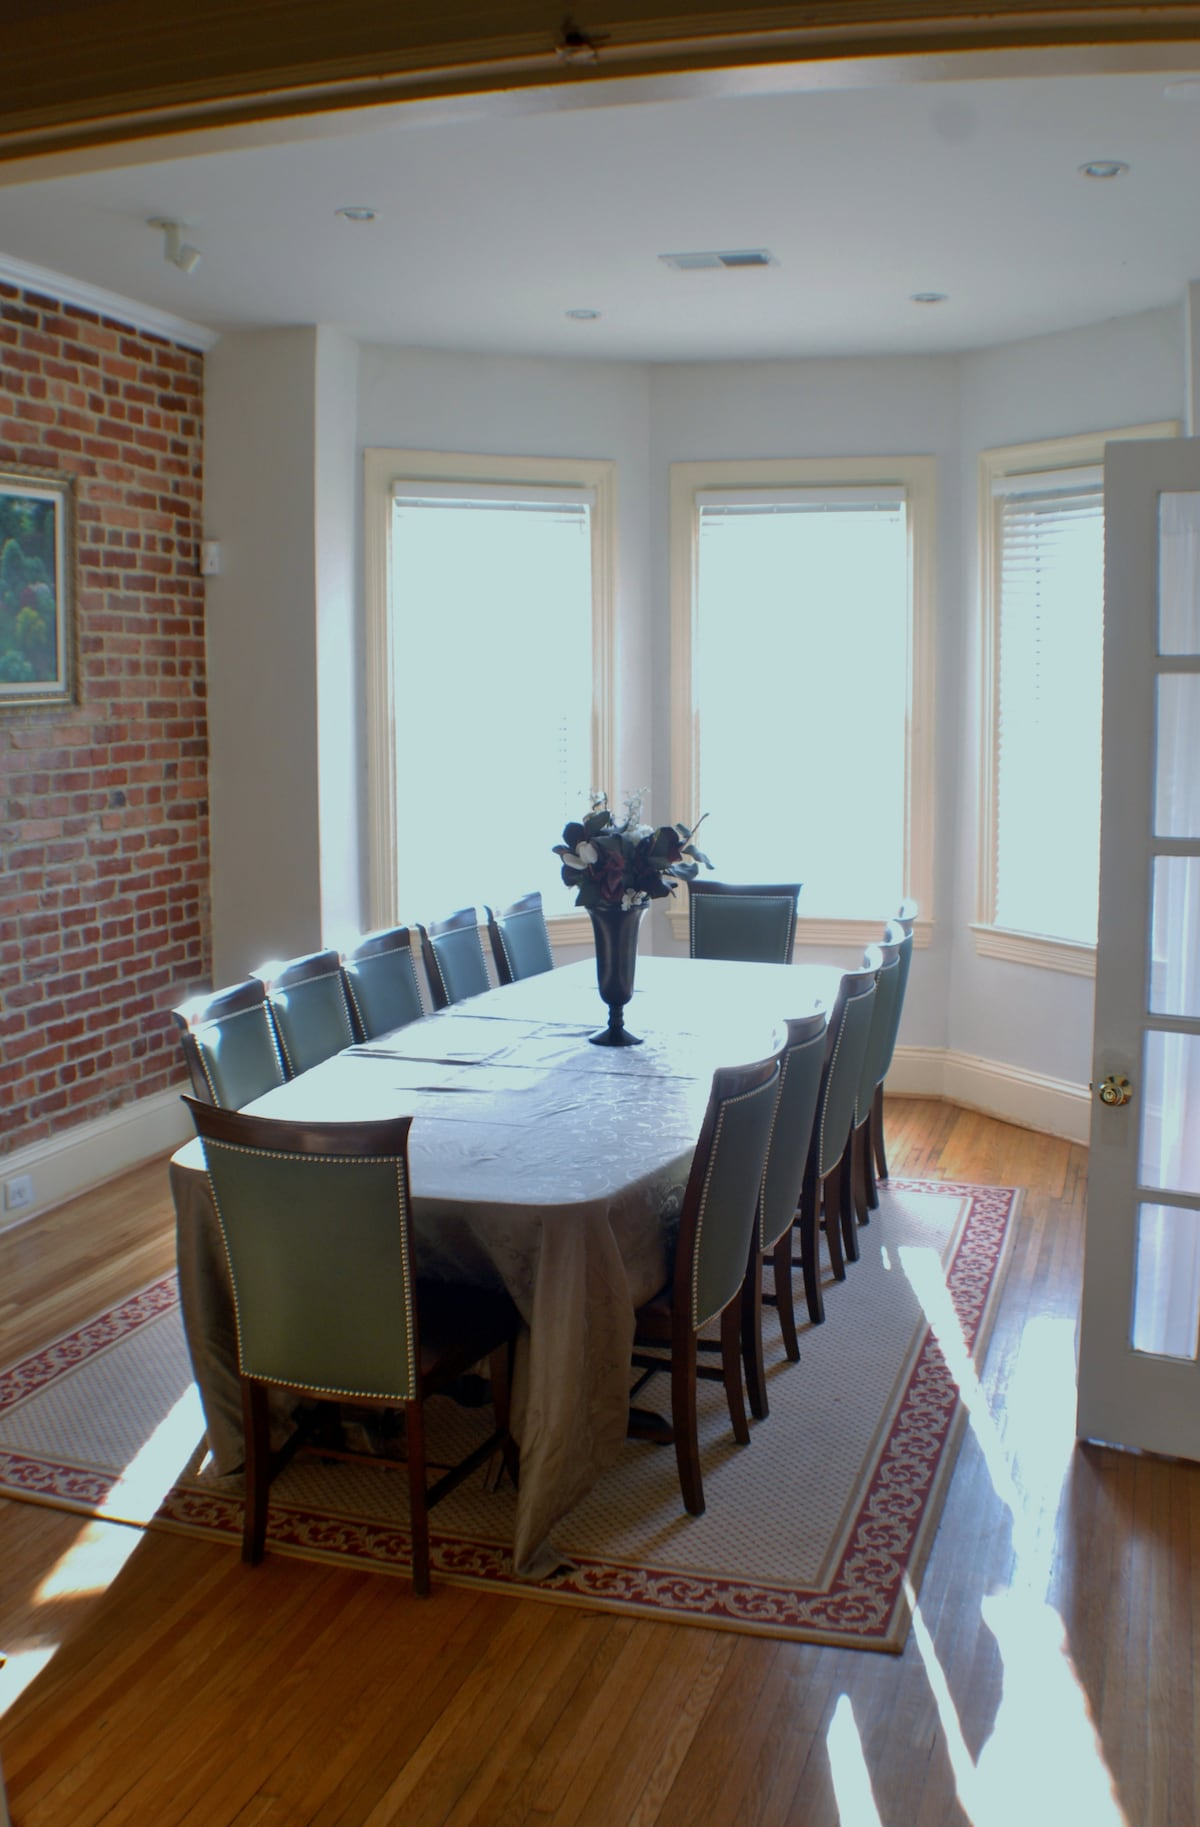 View of the conference room/dining rm table